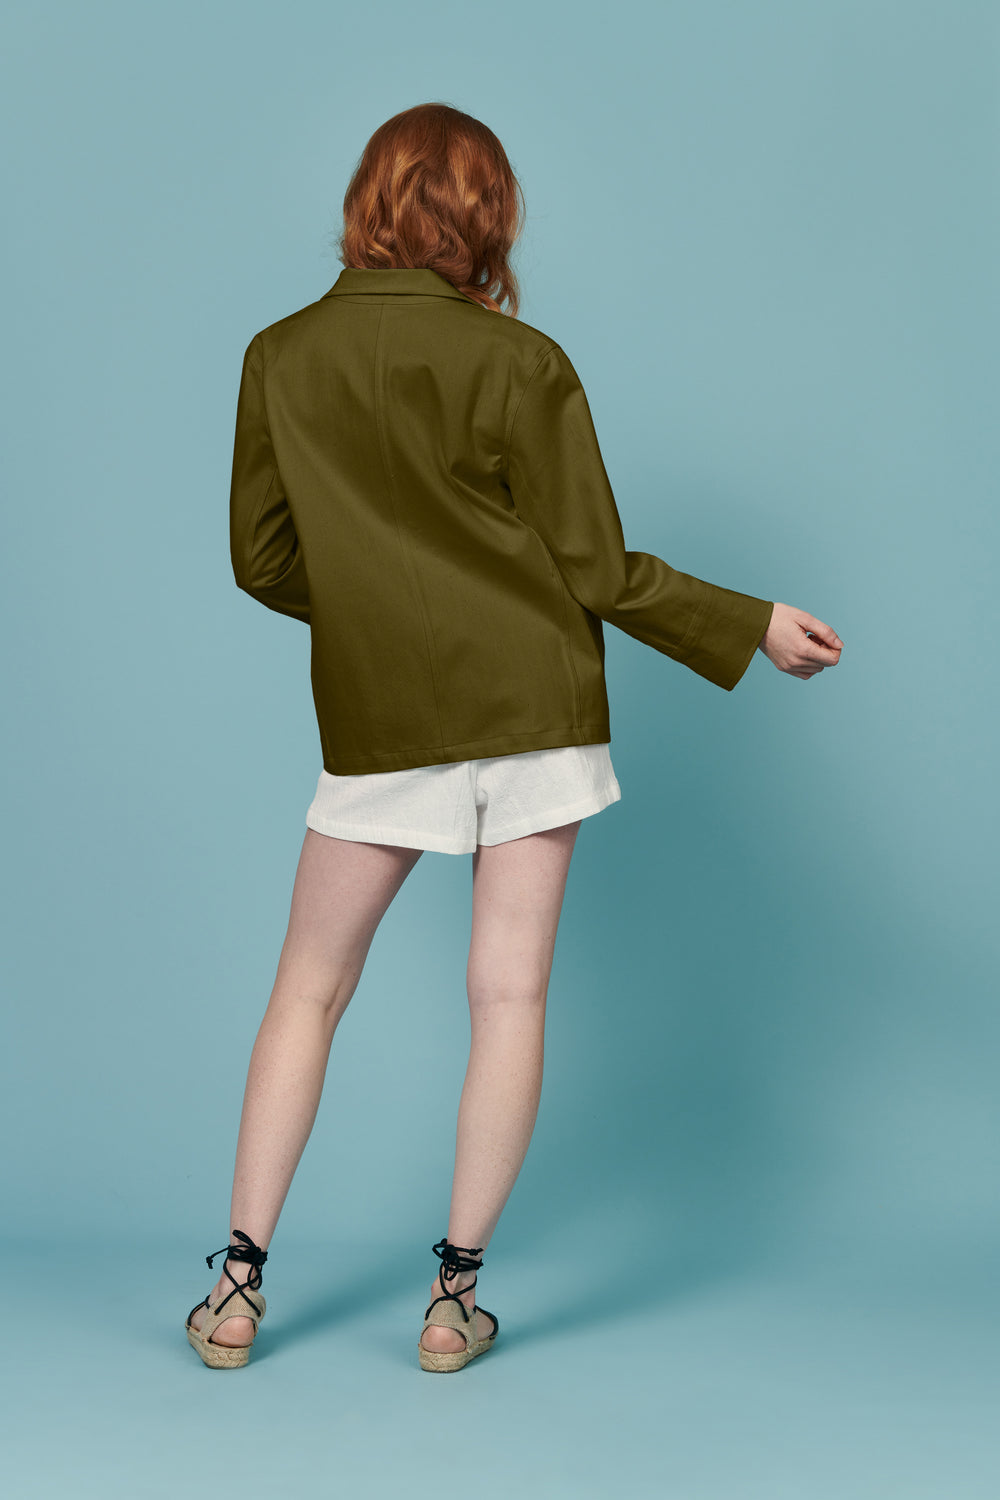 Jordan Jacket in Olive - Whimsy & Row